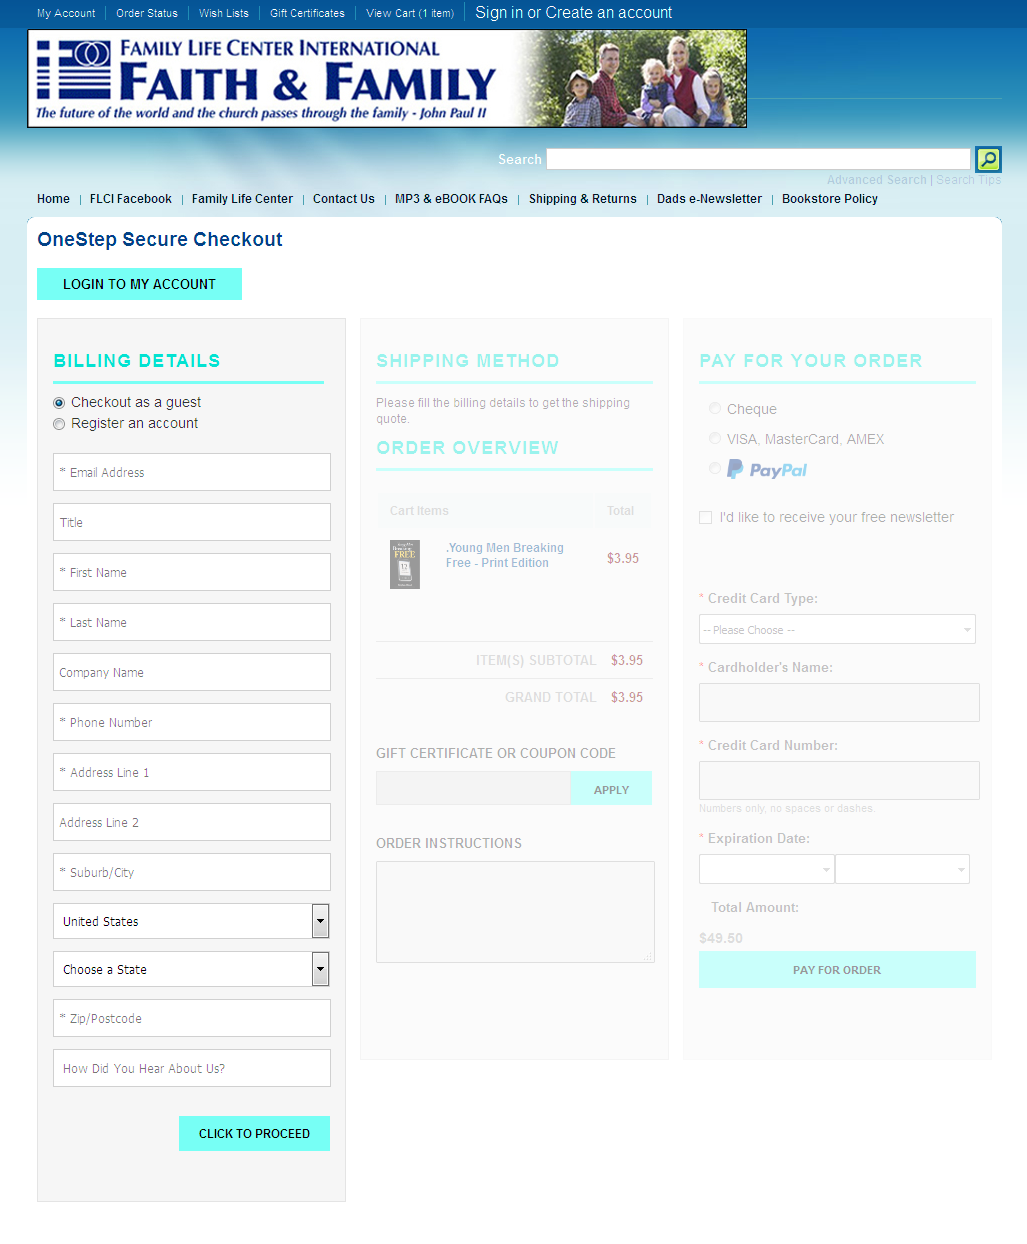 Bigcommerce One Step Checkout In family